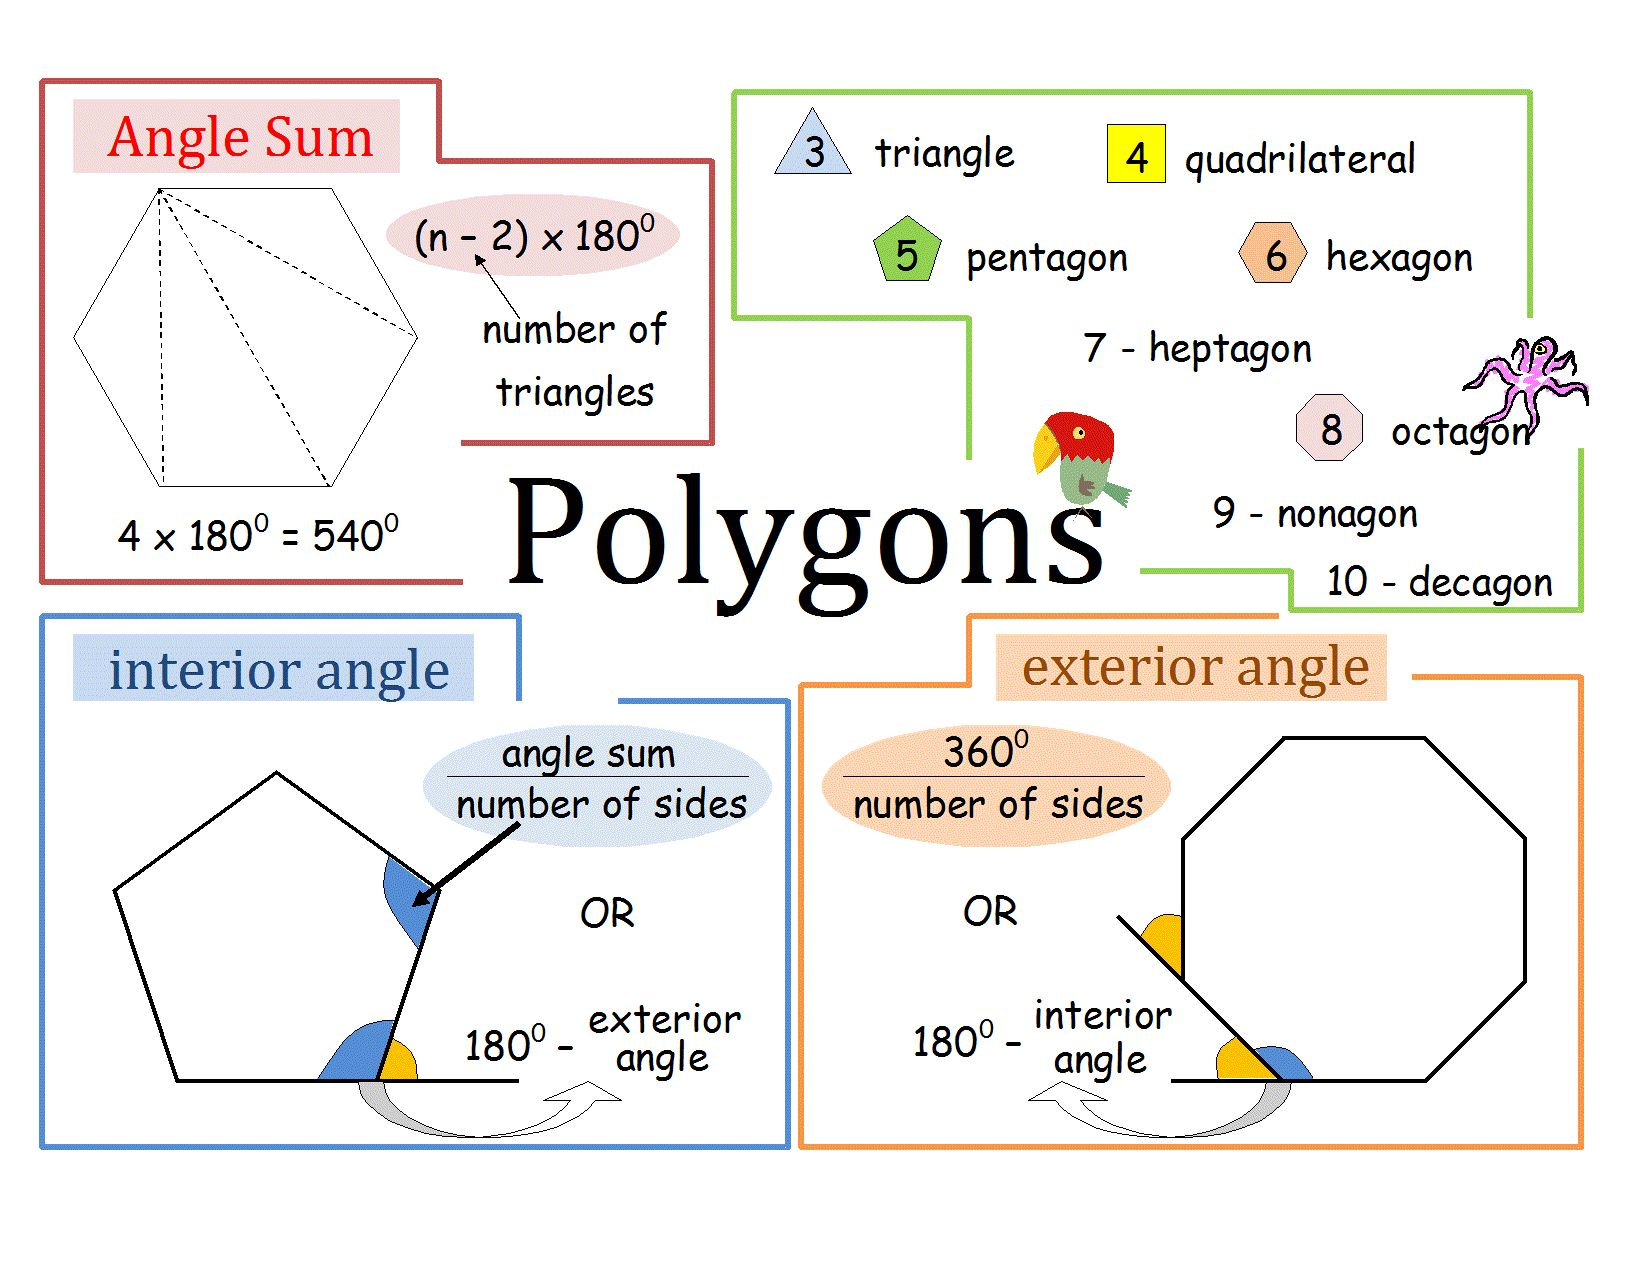 angles in polygons revision poster maths gcse. Black Bedroom Furniture Sets. Home Design Ideas